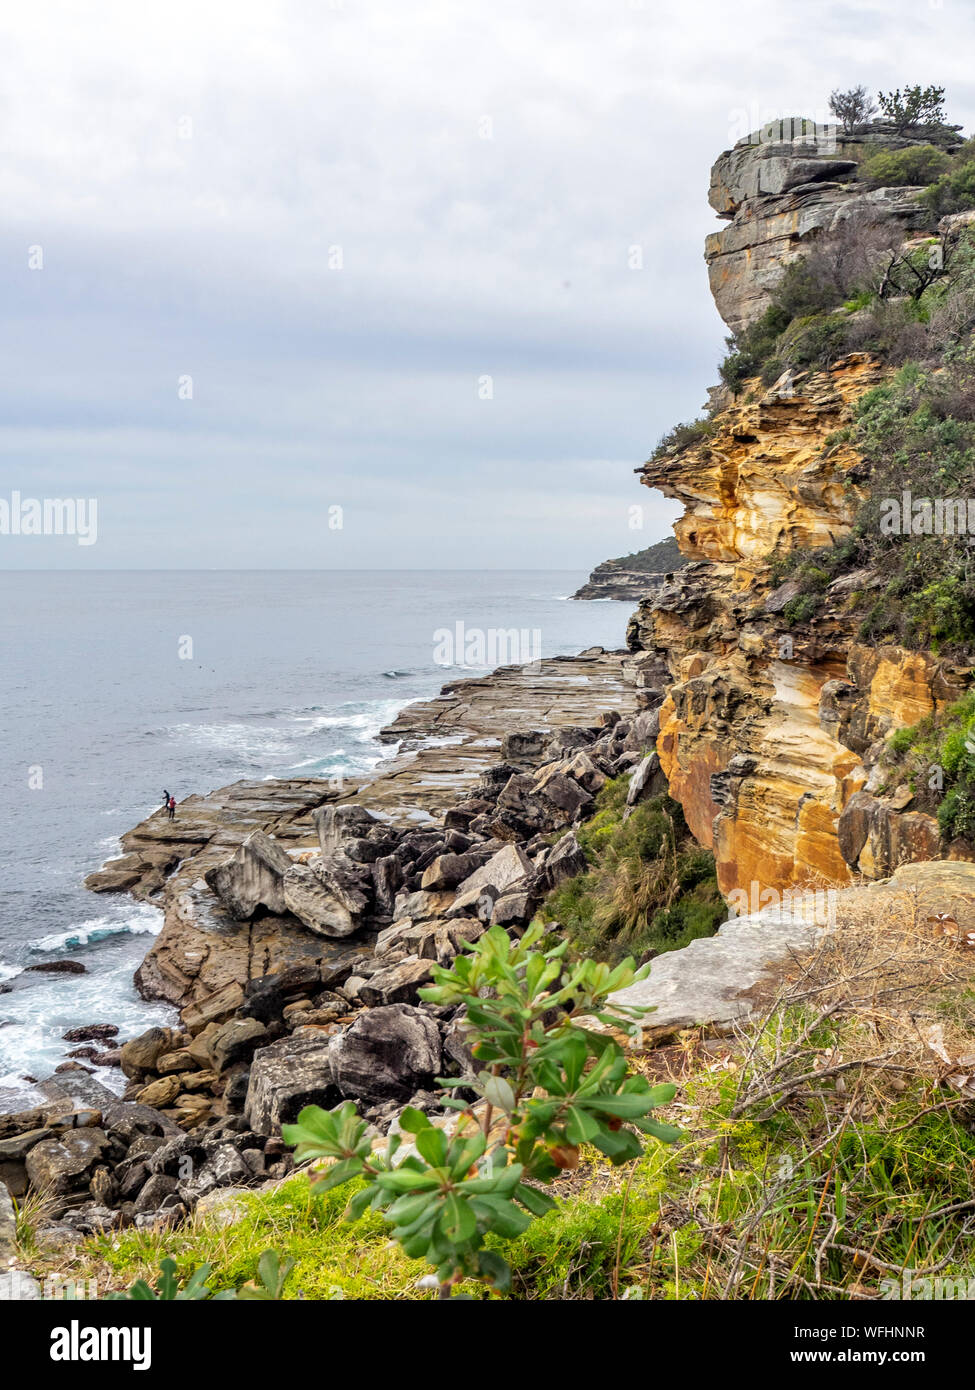 Two men rock fishing of rocks at Manly Headland Sydney NSW Australia. Stock Photo